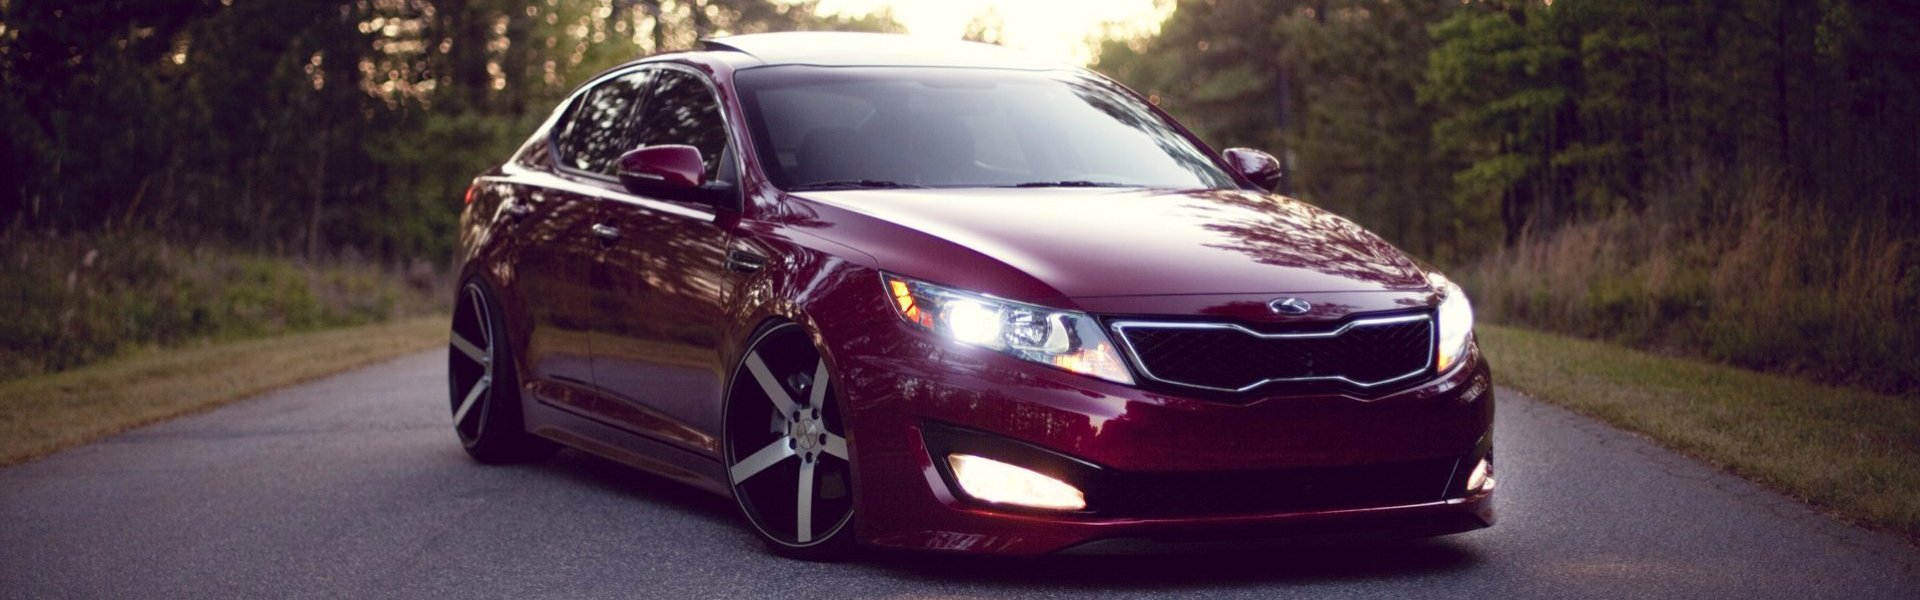 Kia Optima red stance-тюнинг